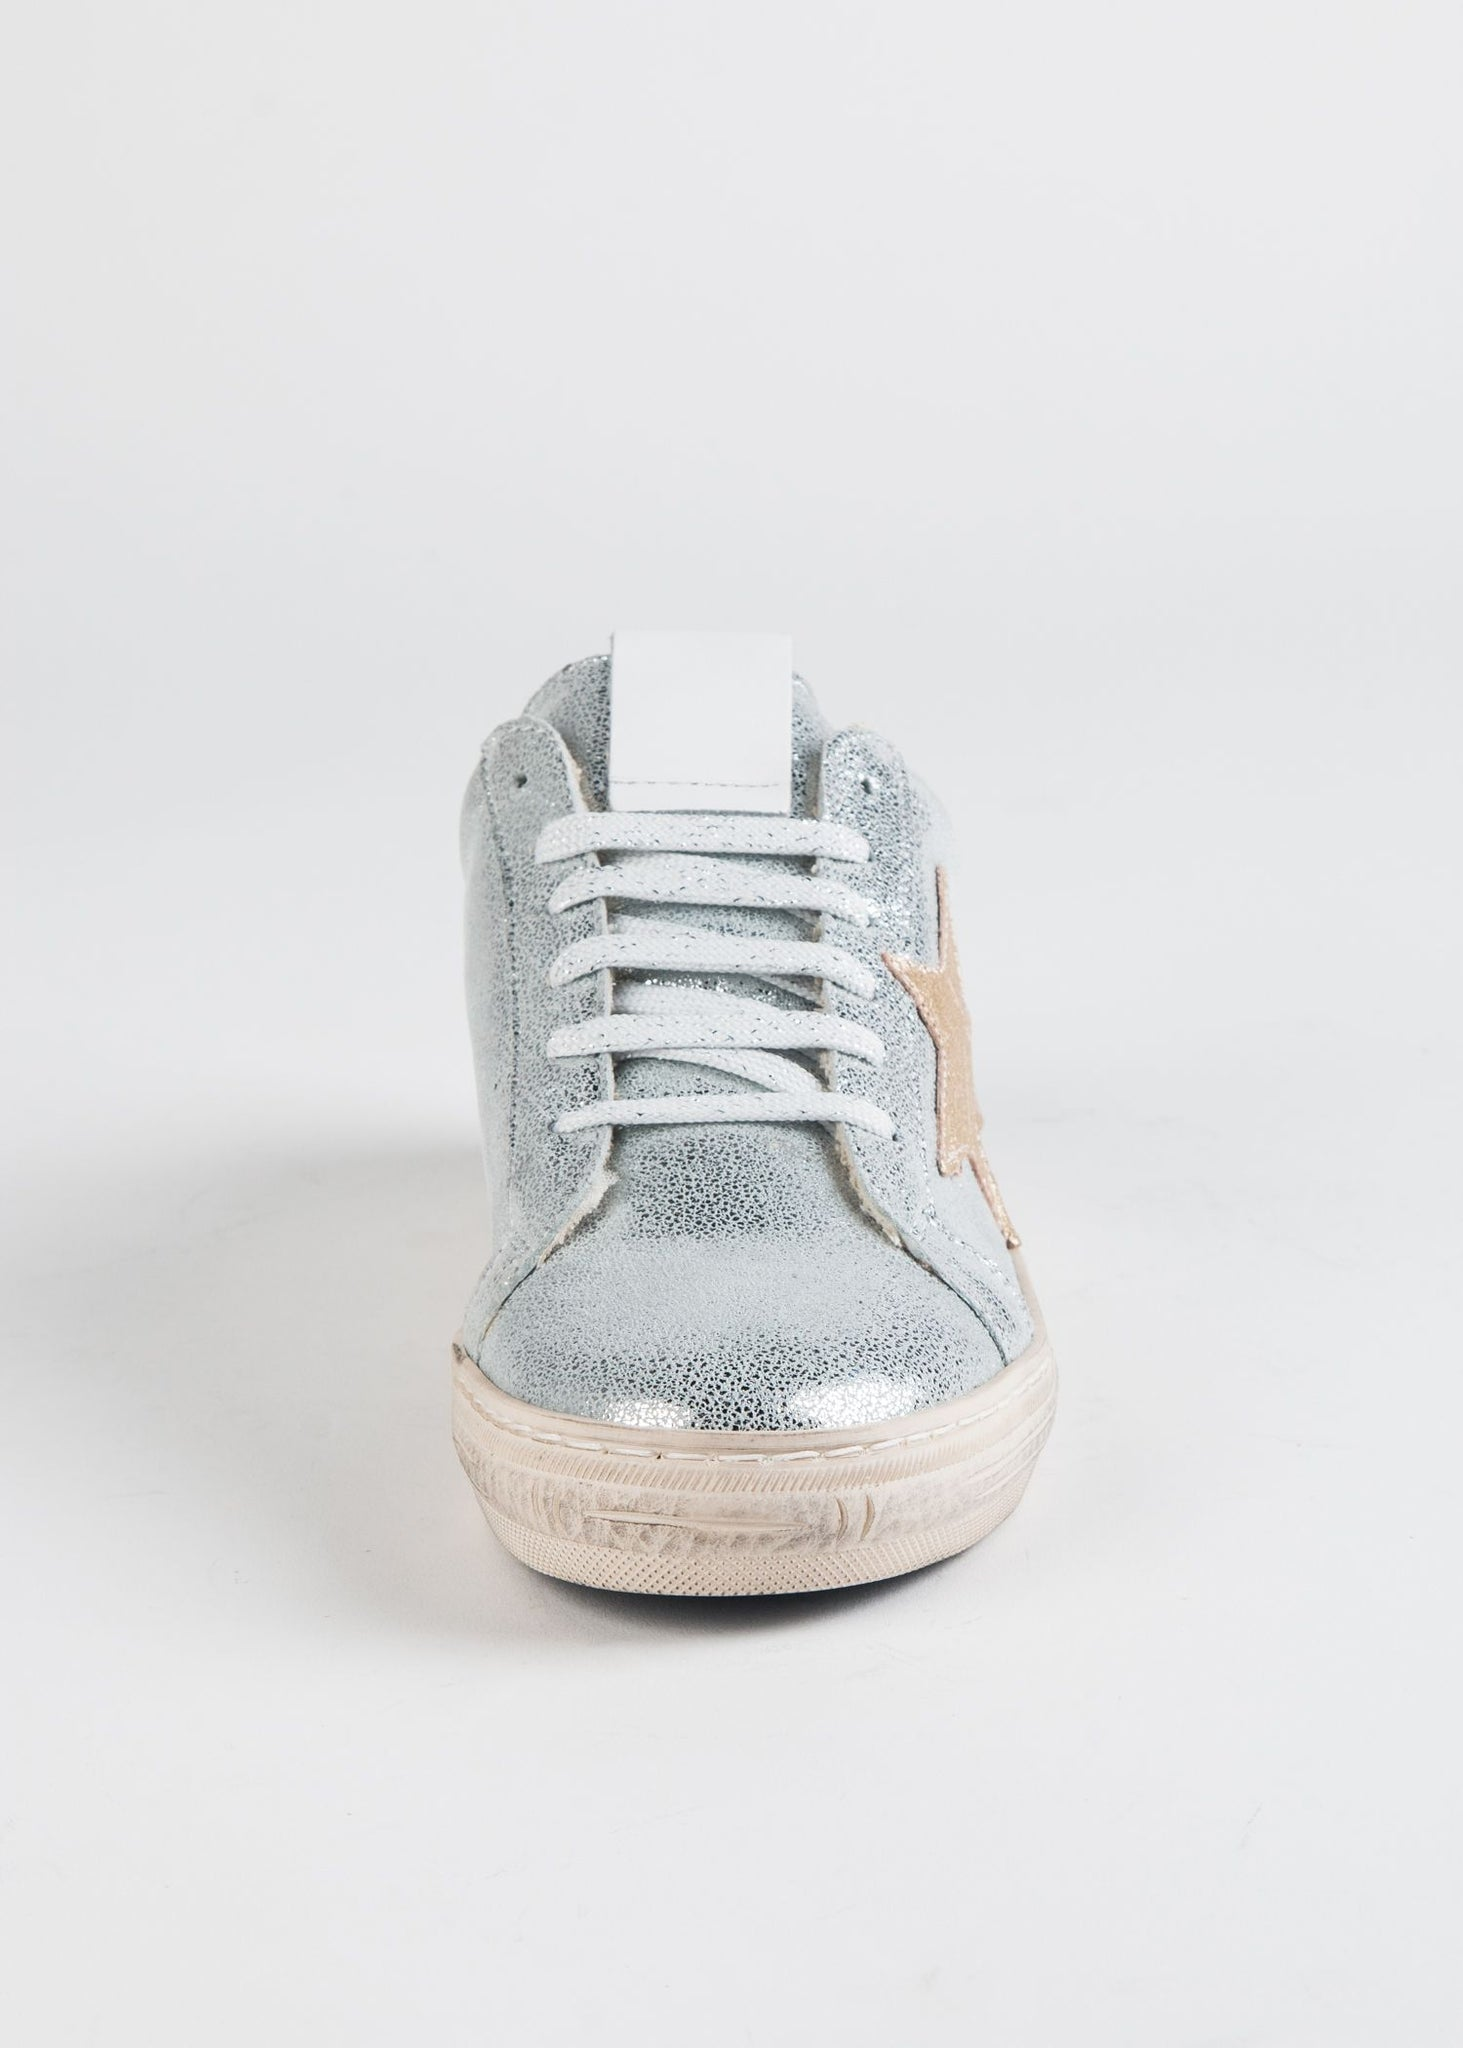 DISTRESSED METALLIC STAR SNEAKER